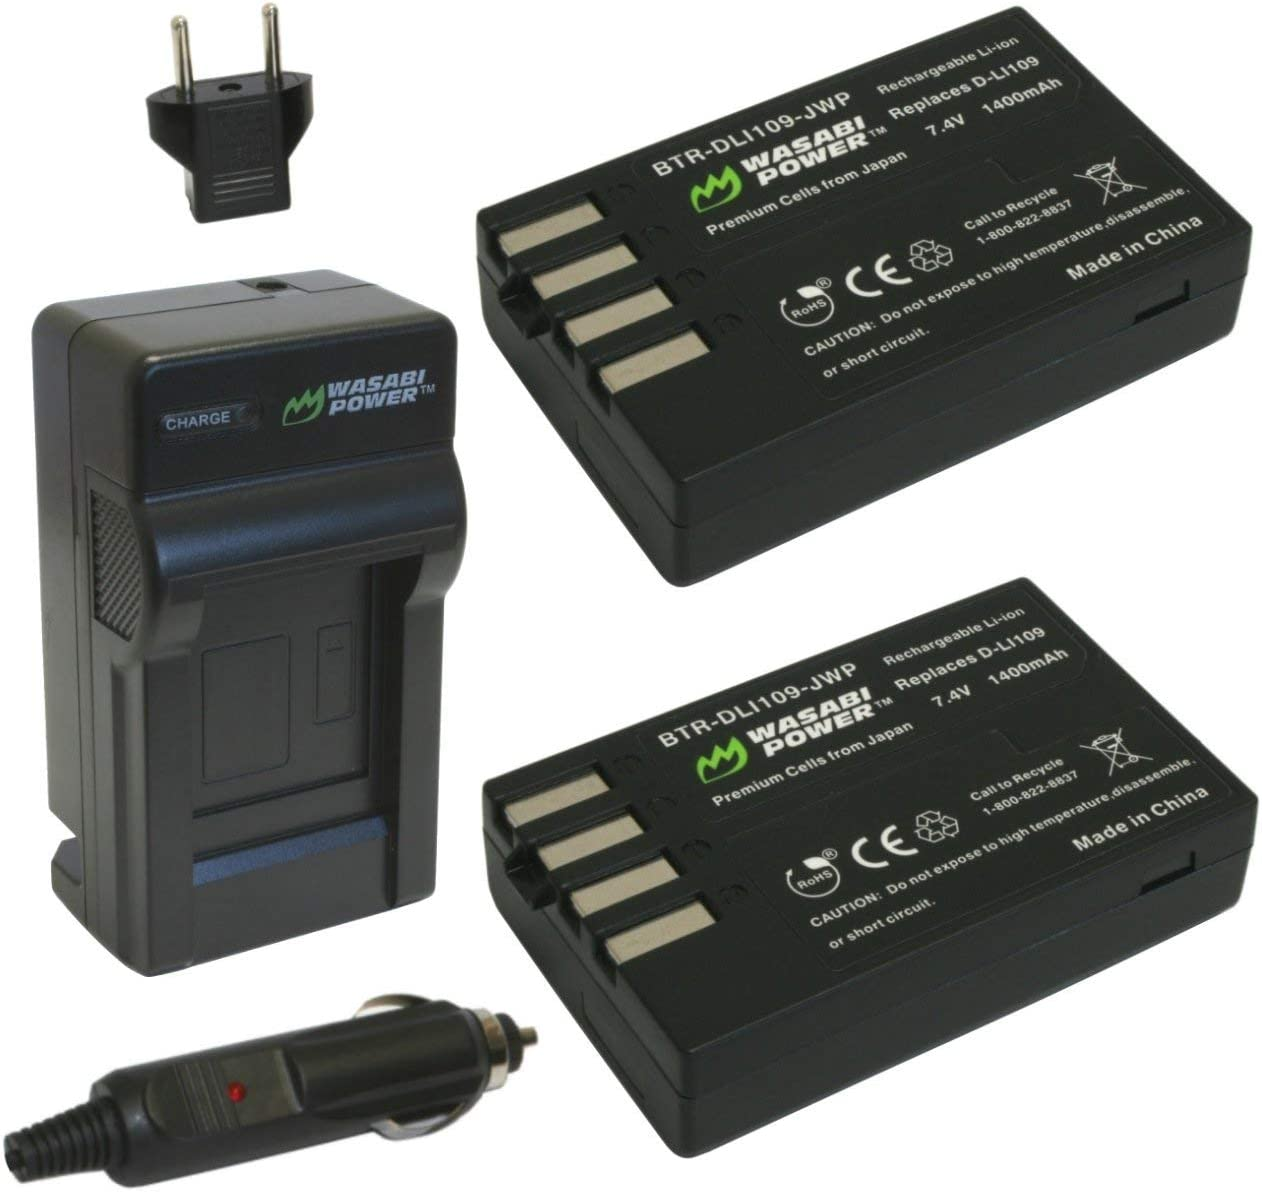 Wasabi Power Battery (2-Pack) and Charger for Pentax D-LI109 and Pentax Kr, K-30, K-50, K-500